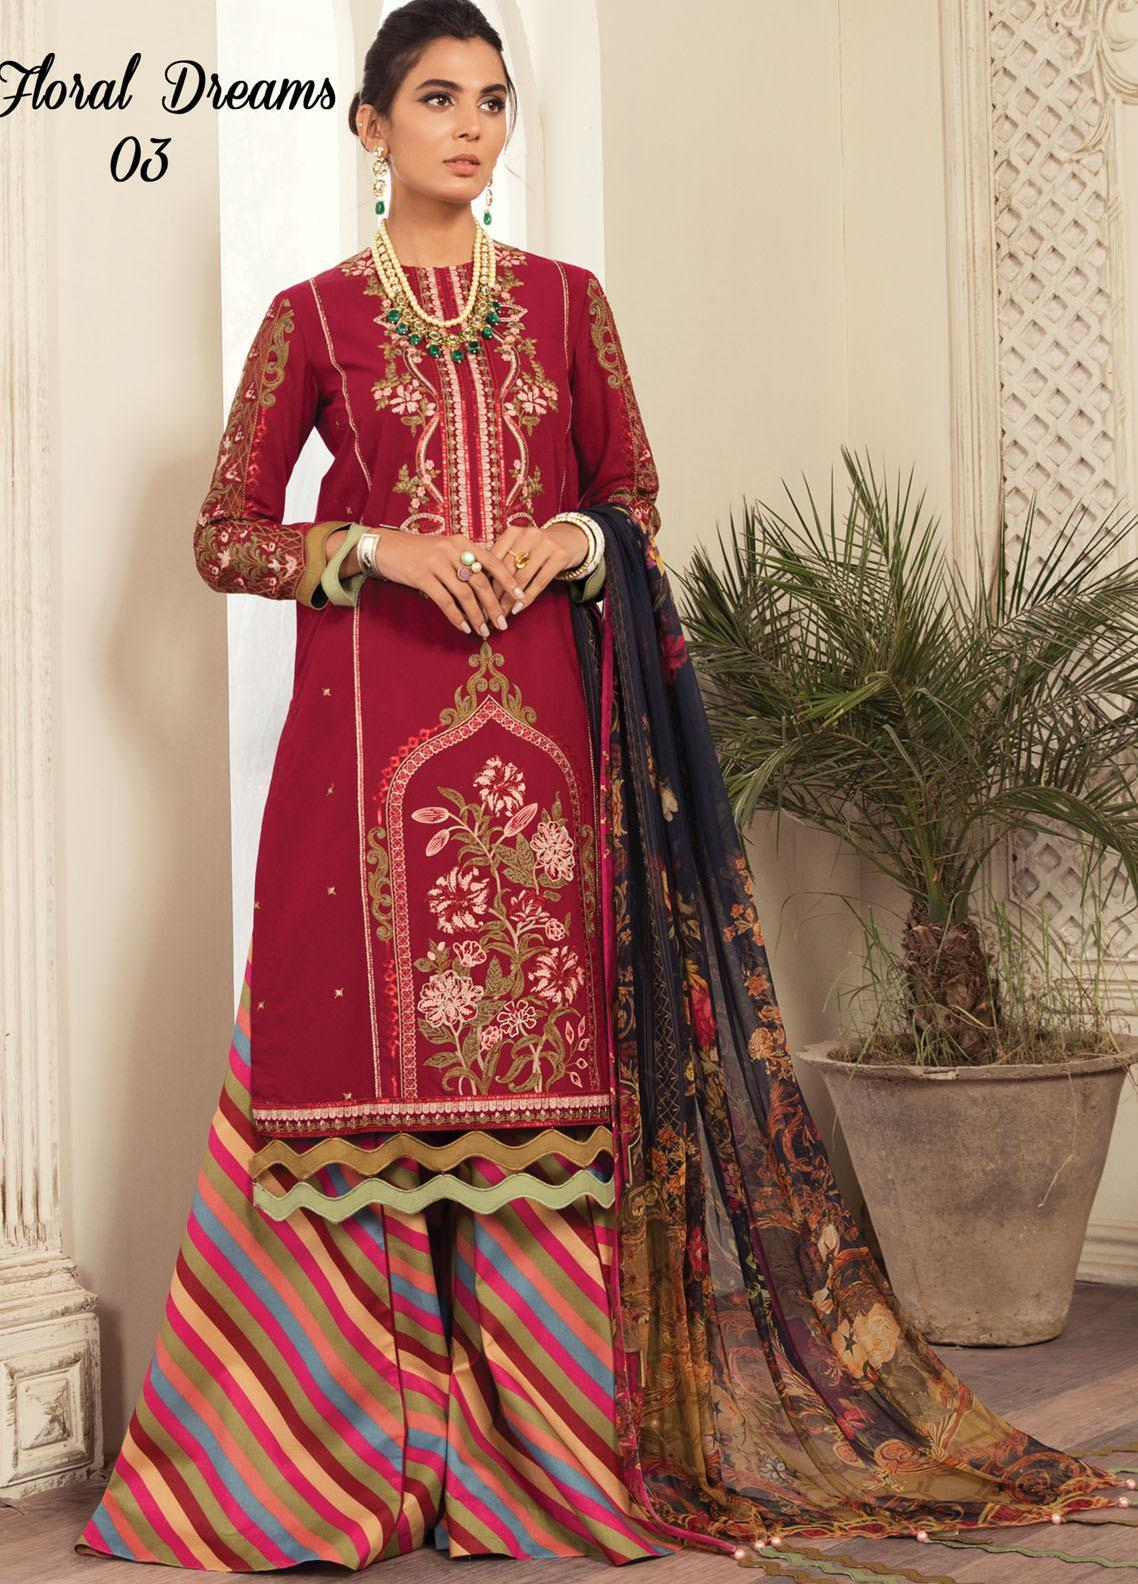 Anamta by Mahwish Ishtiaq Embroidered Lawn Suits Unstitched 3 Piece ANT21L 03-Floral Dreams - Luxury Collection